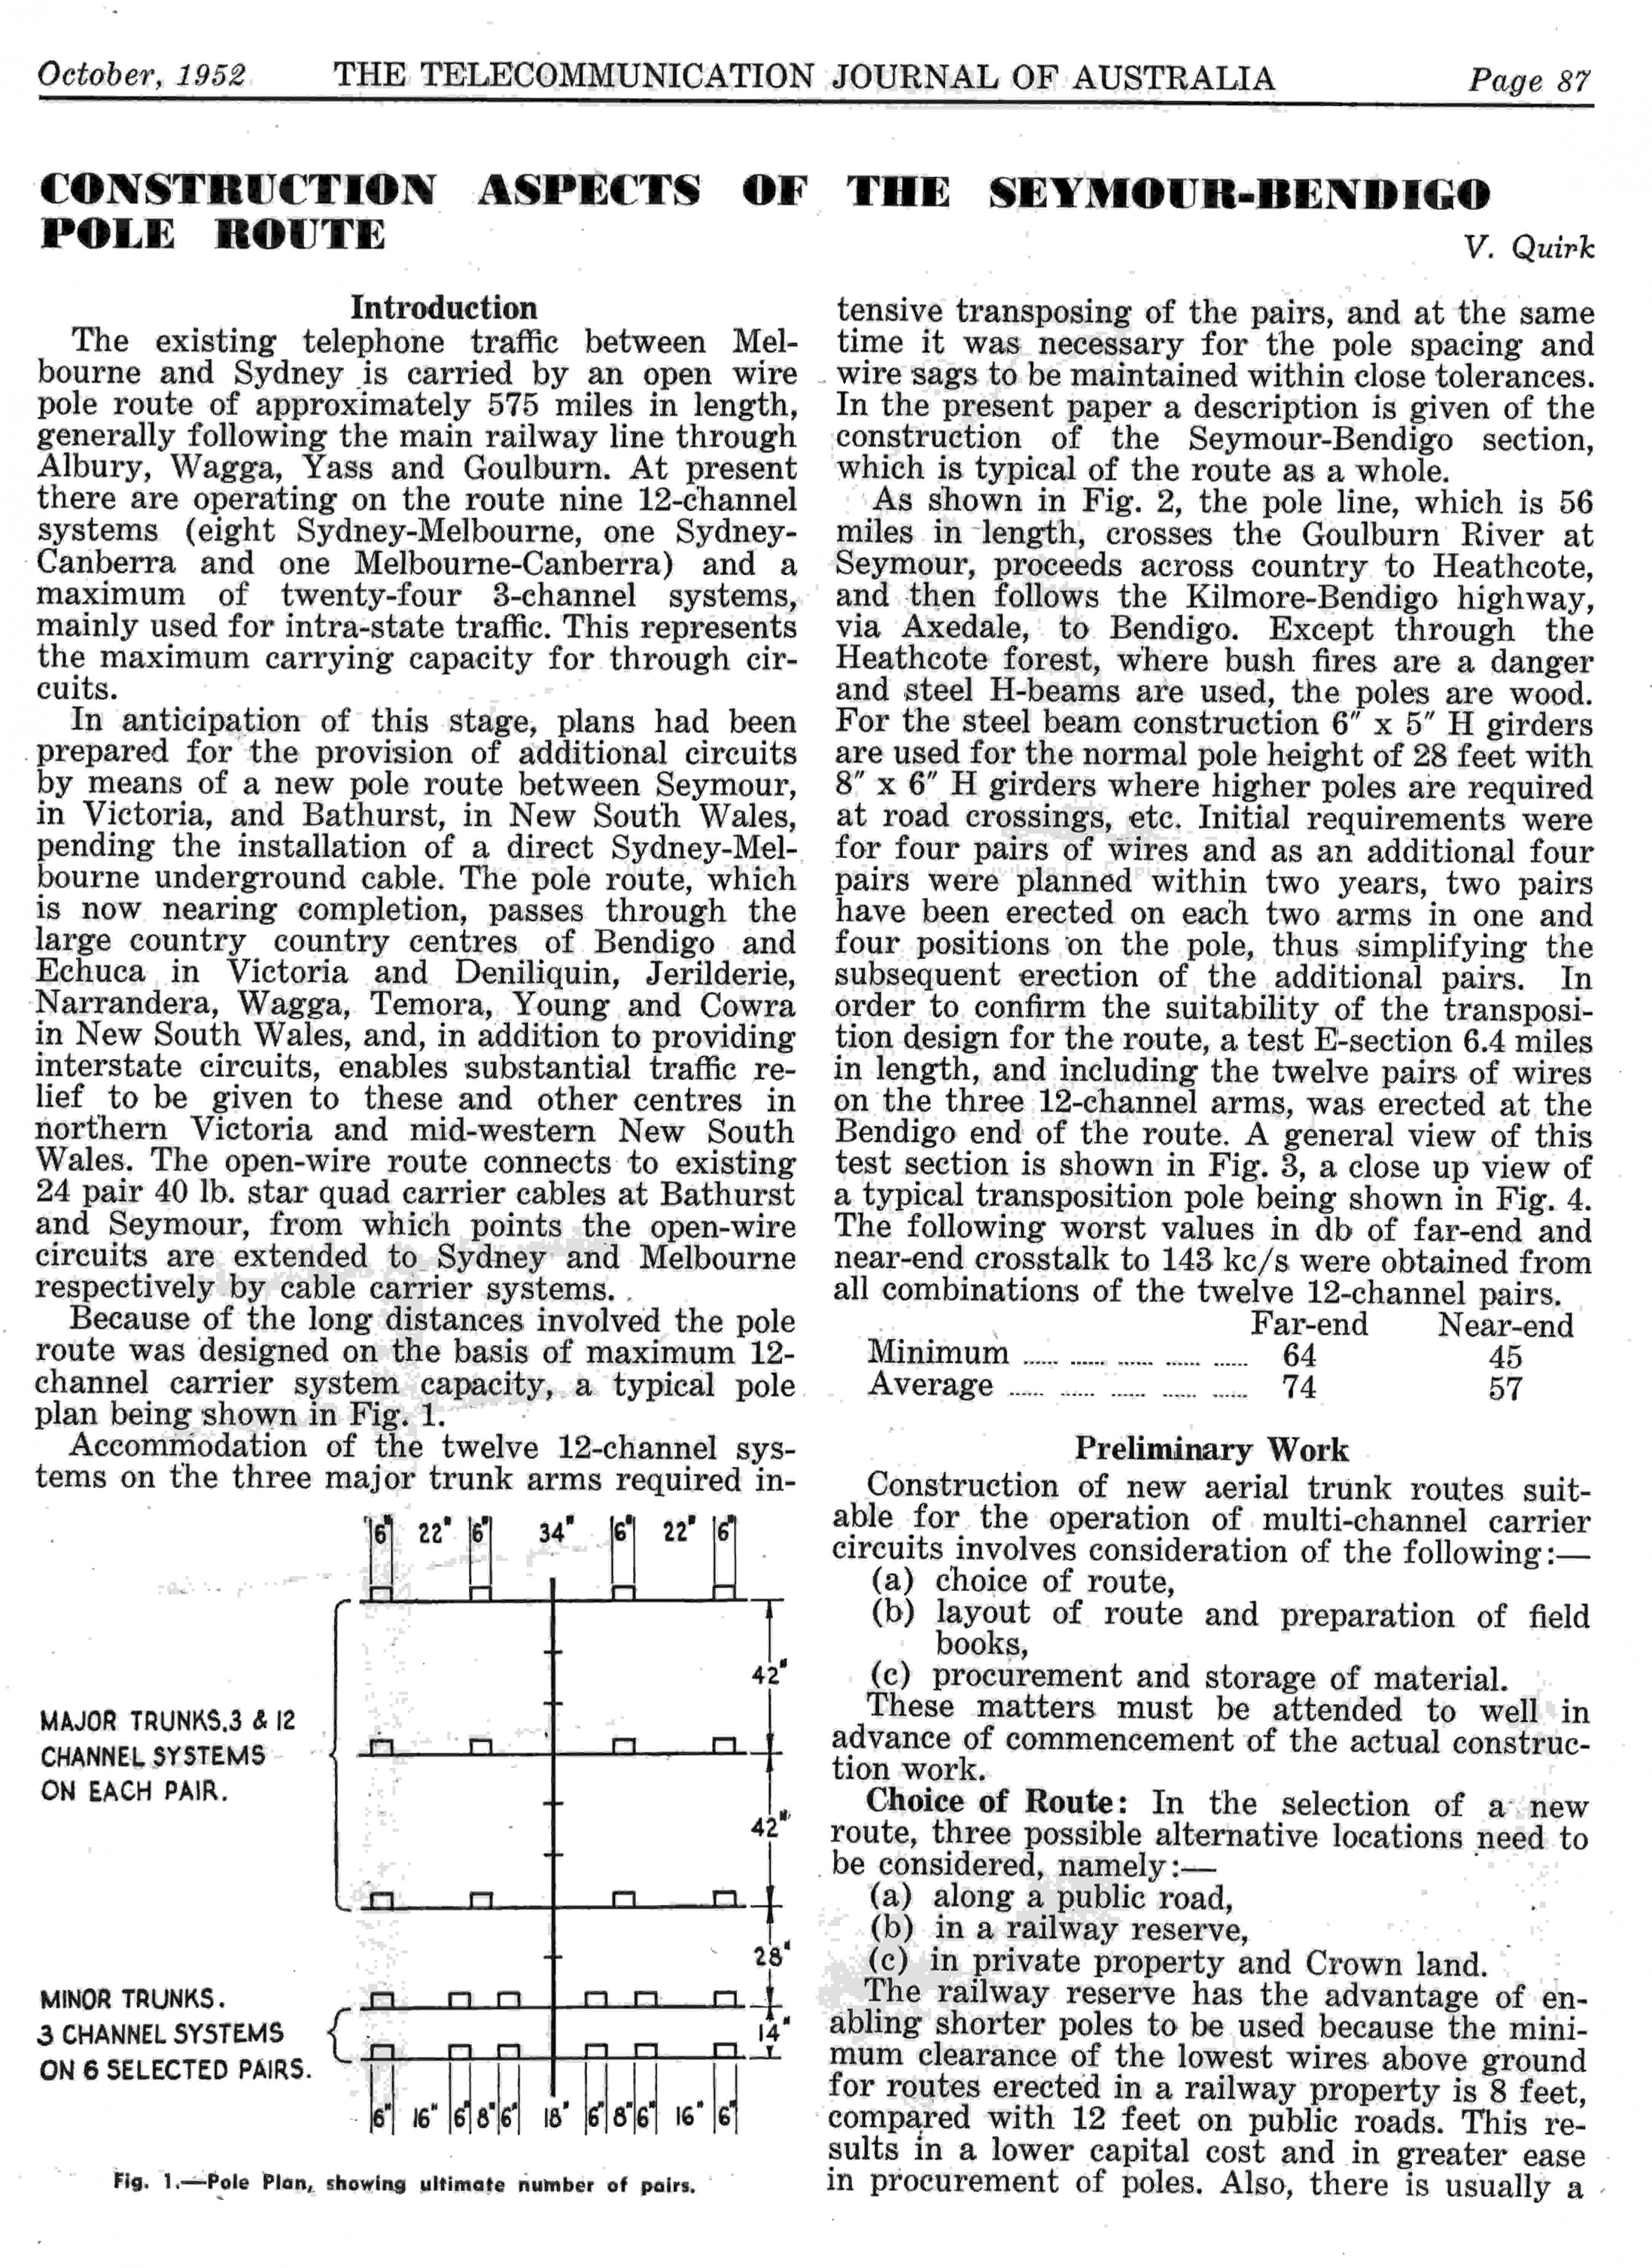 First page of Historical Paper